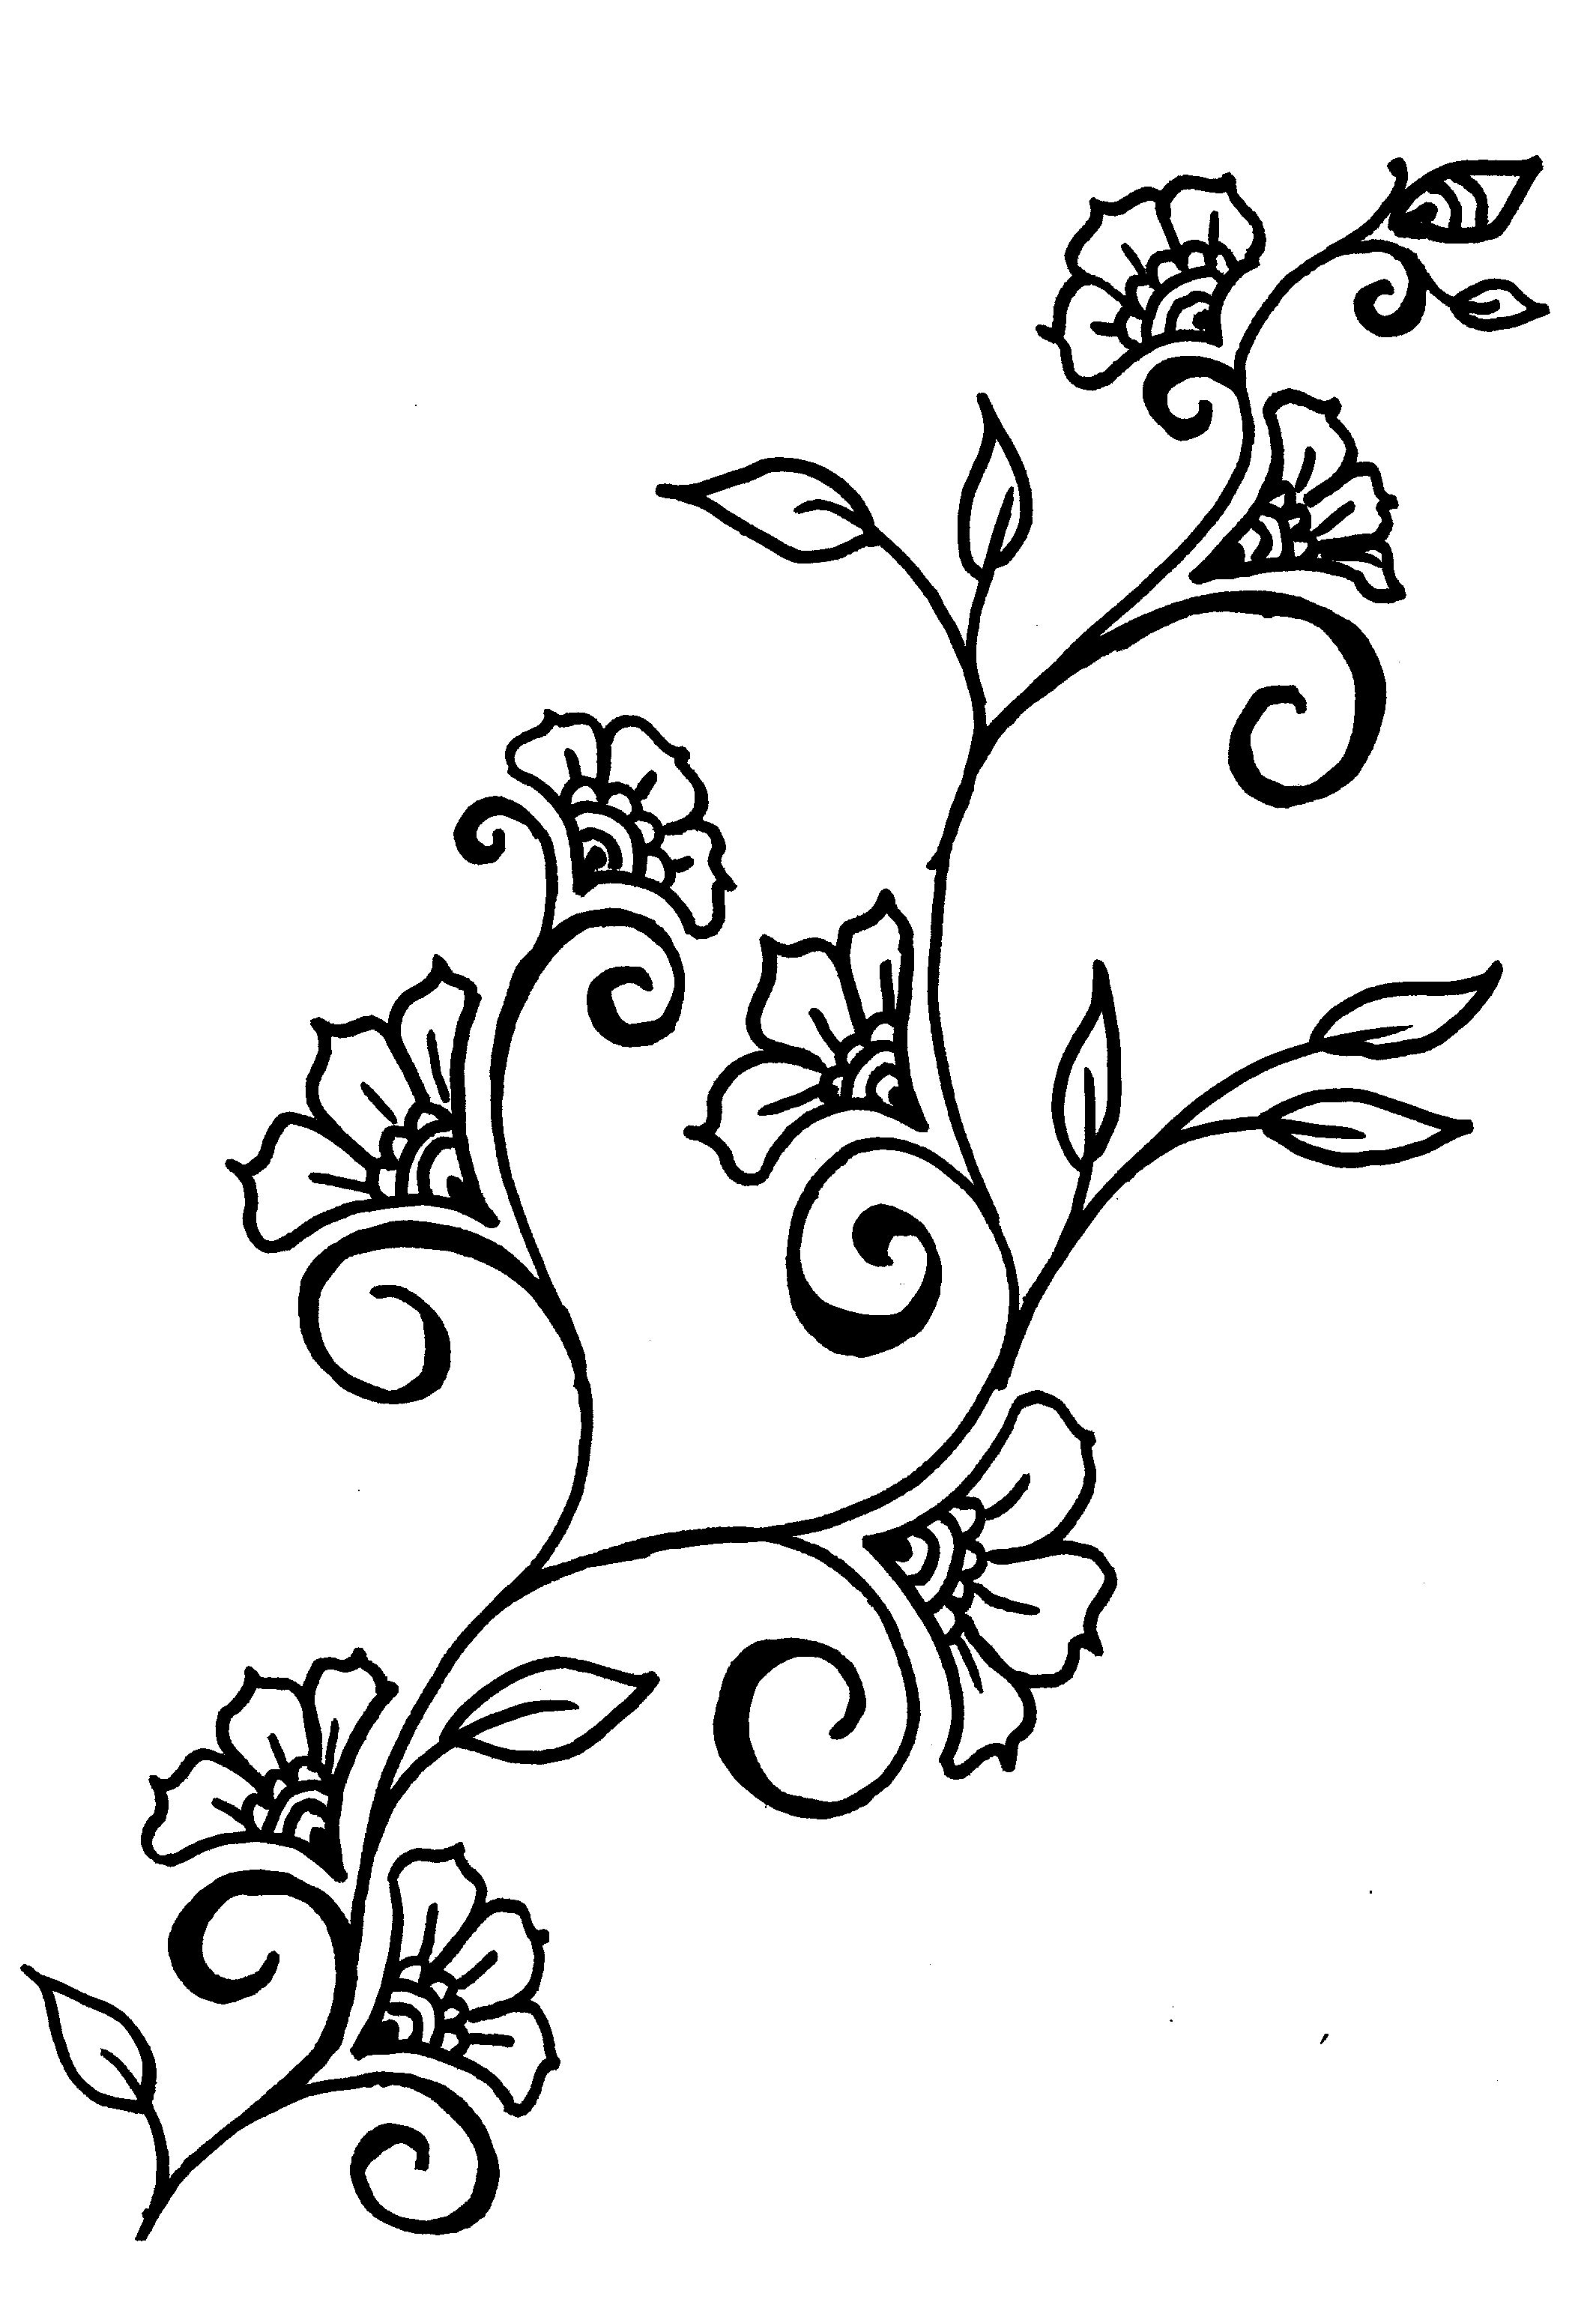 Drawings of rosd vines henna inspired design ideas also drawing rh cz pinterest